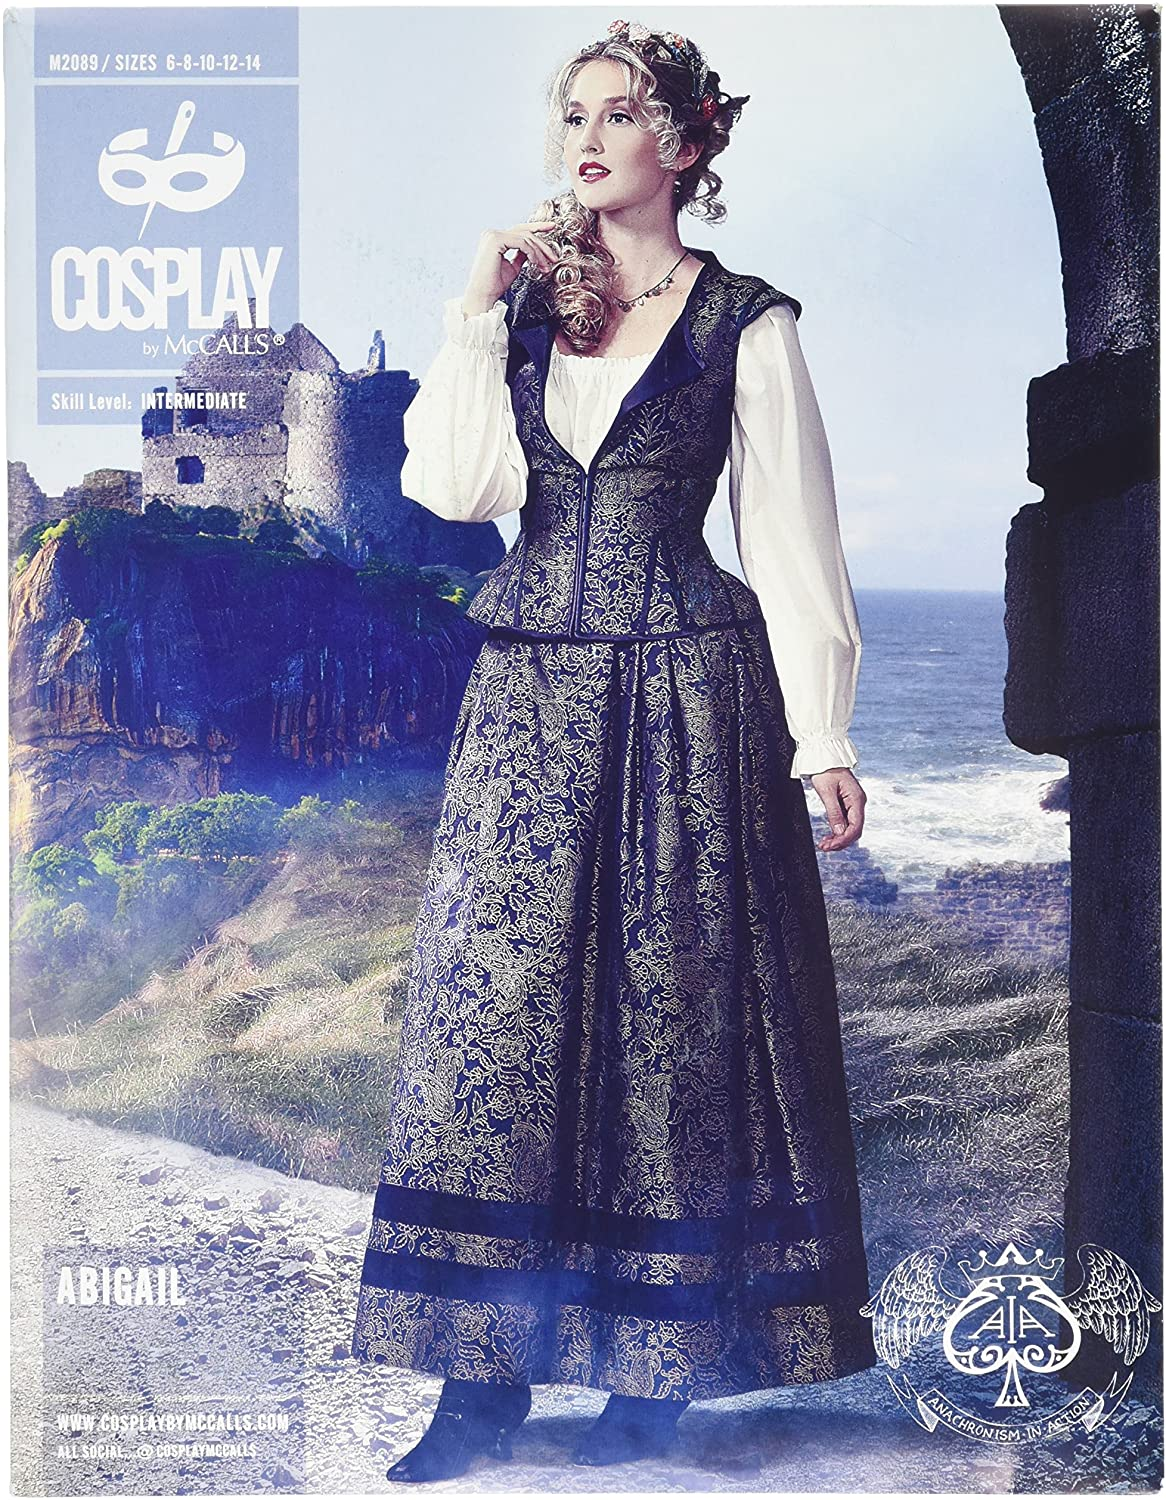 Cosplay By McCall's Abigail Vest/Skirt and Petticoat, Multi-Colour, Sizes 6-14